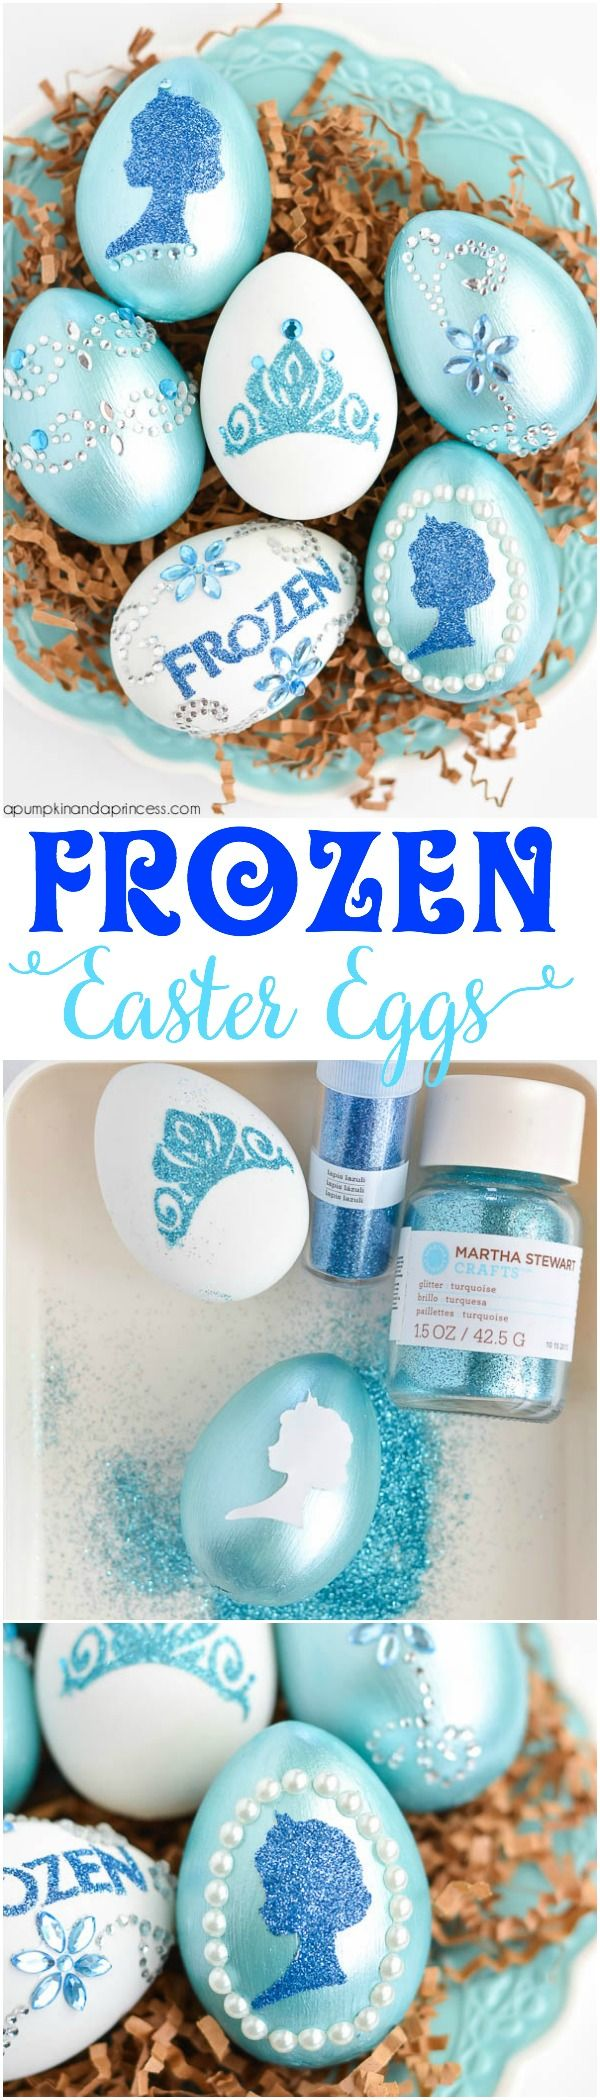 DIY Disney Frozen Easter Eggs.